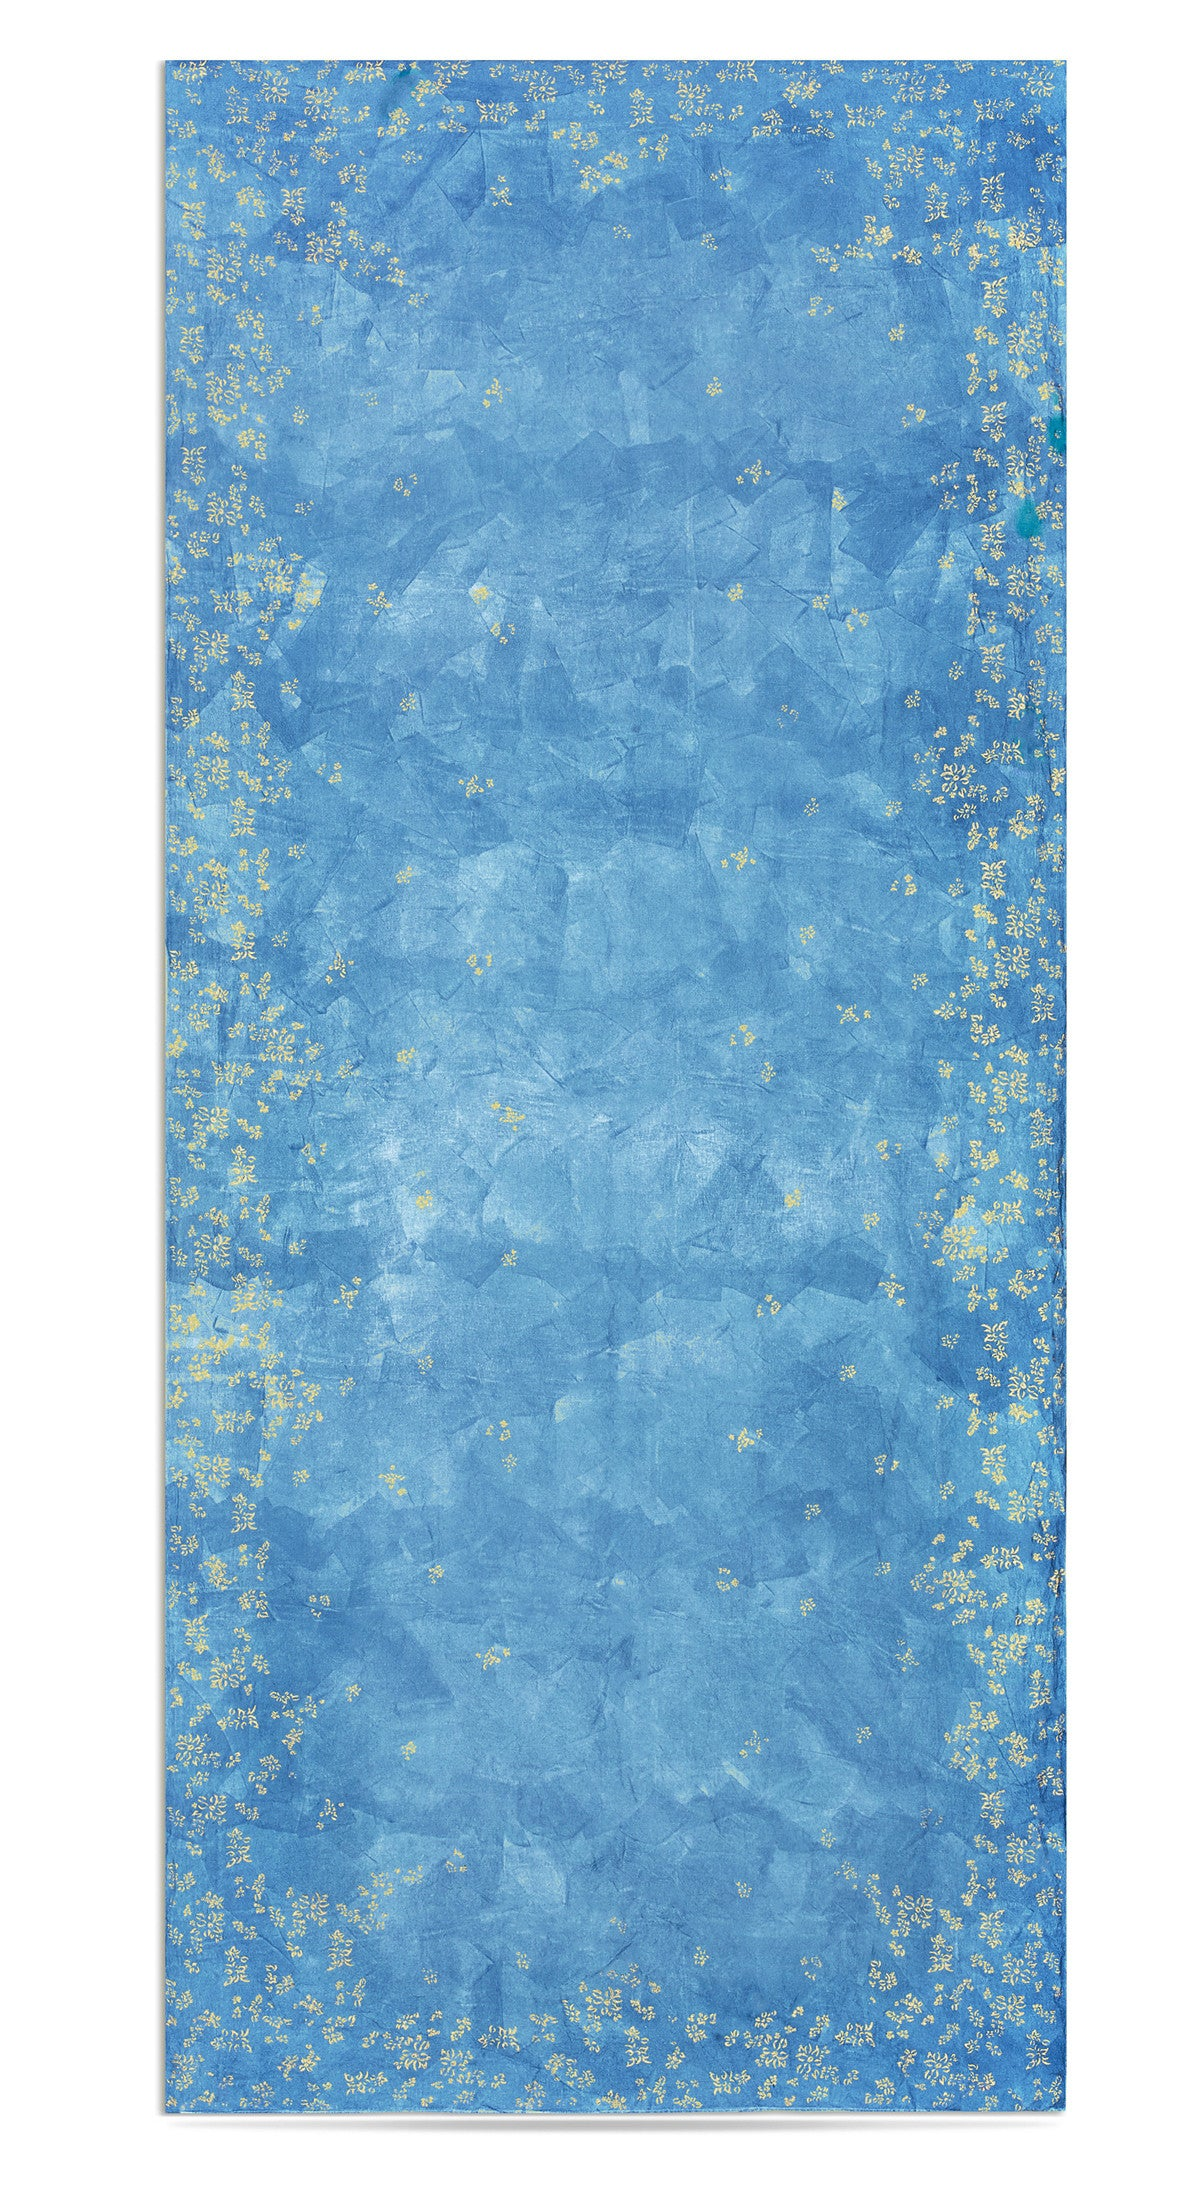 Bernadette's Hand Stamped Falling Flower On Full Field Linen Tablecloth in Sky Blue & Gold